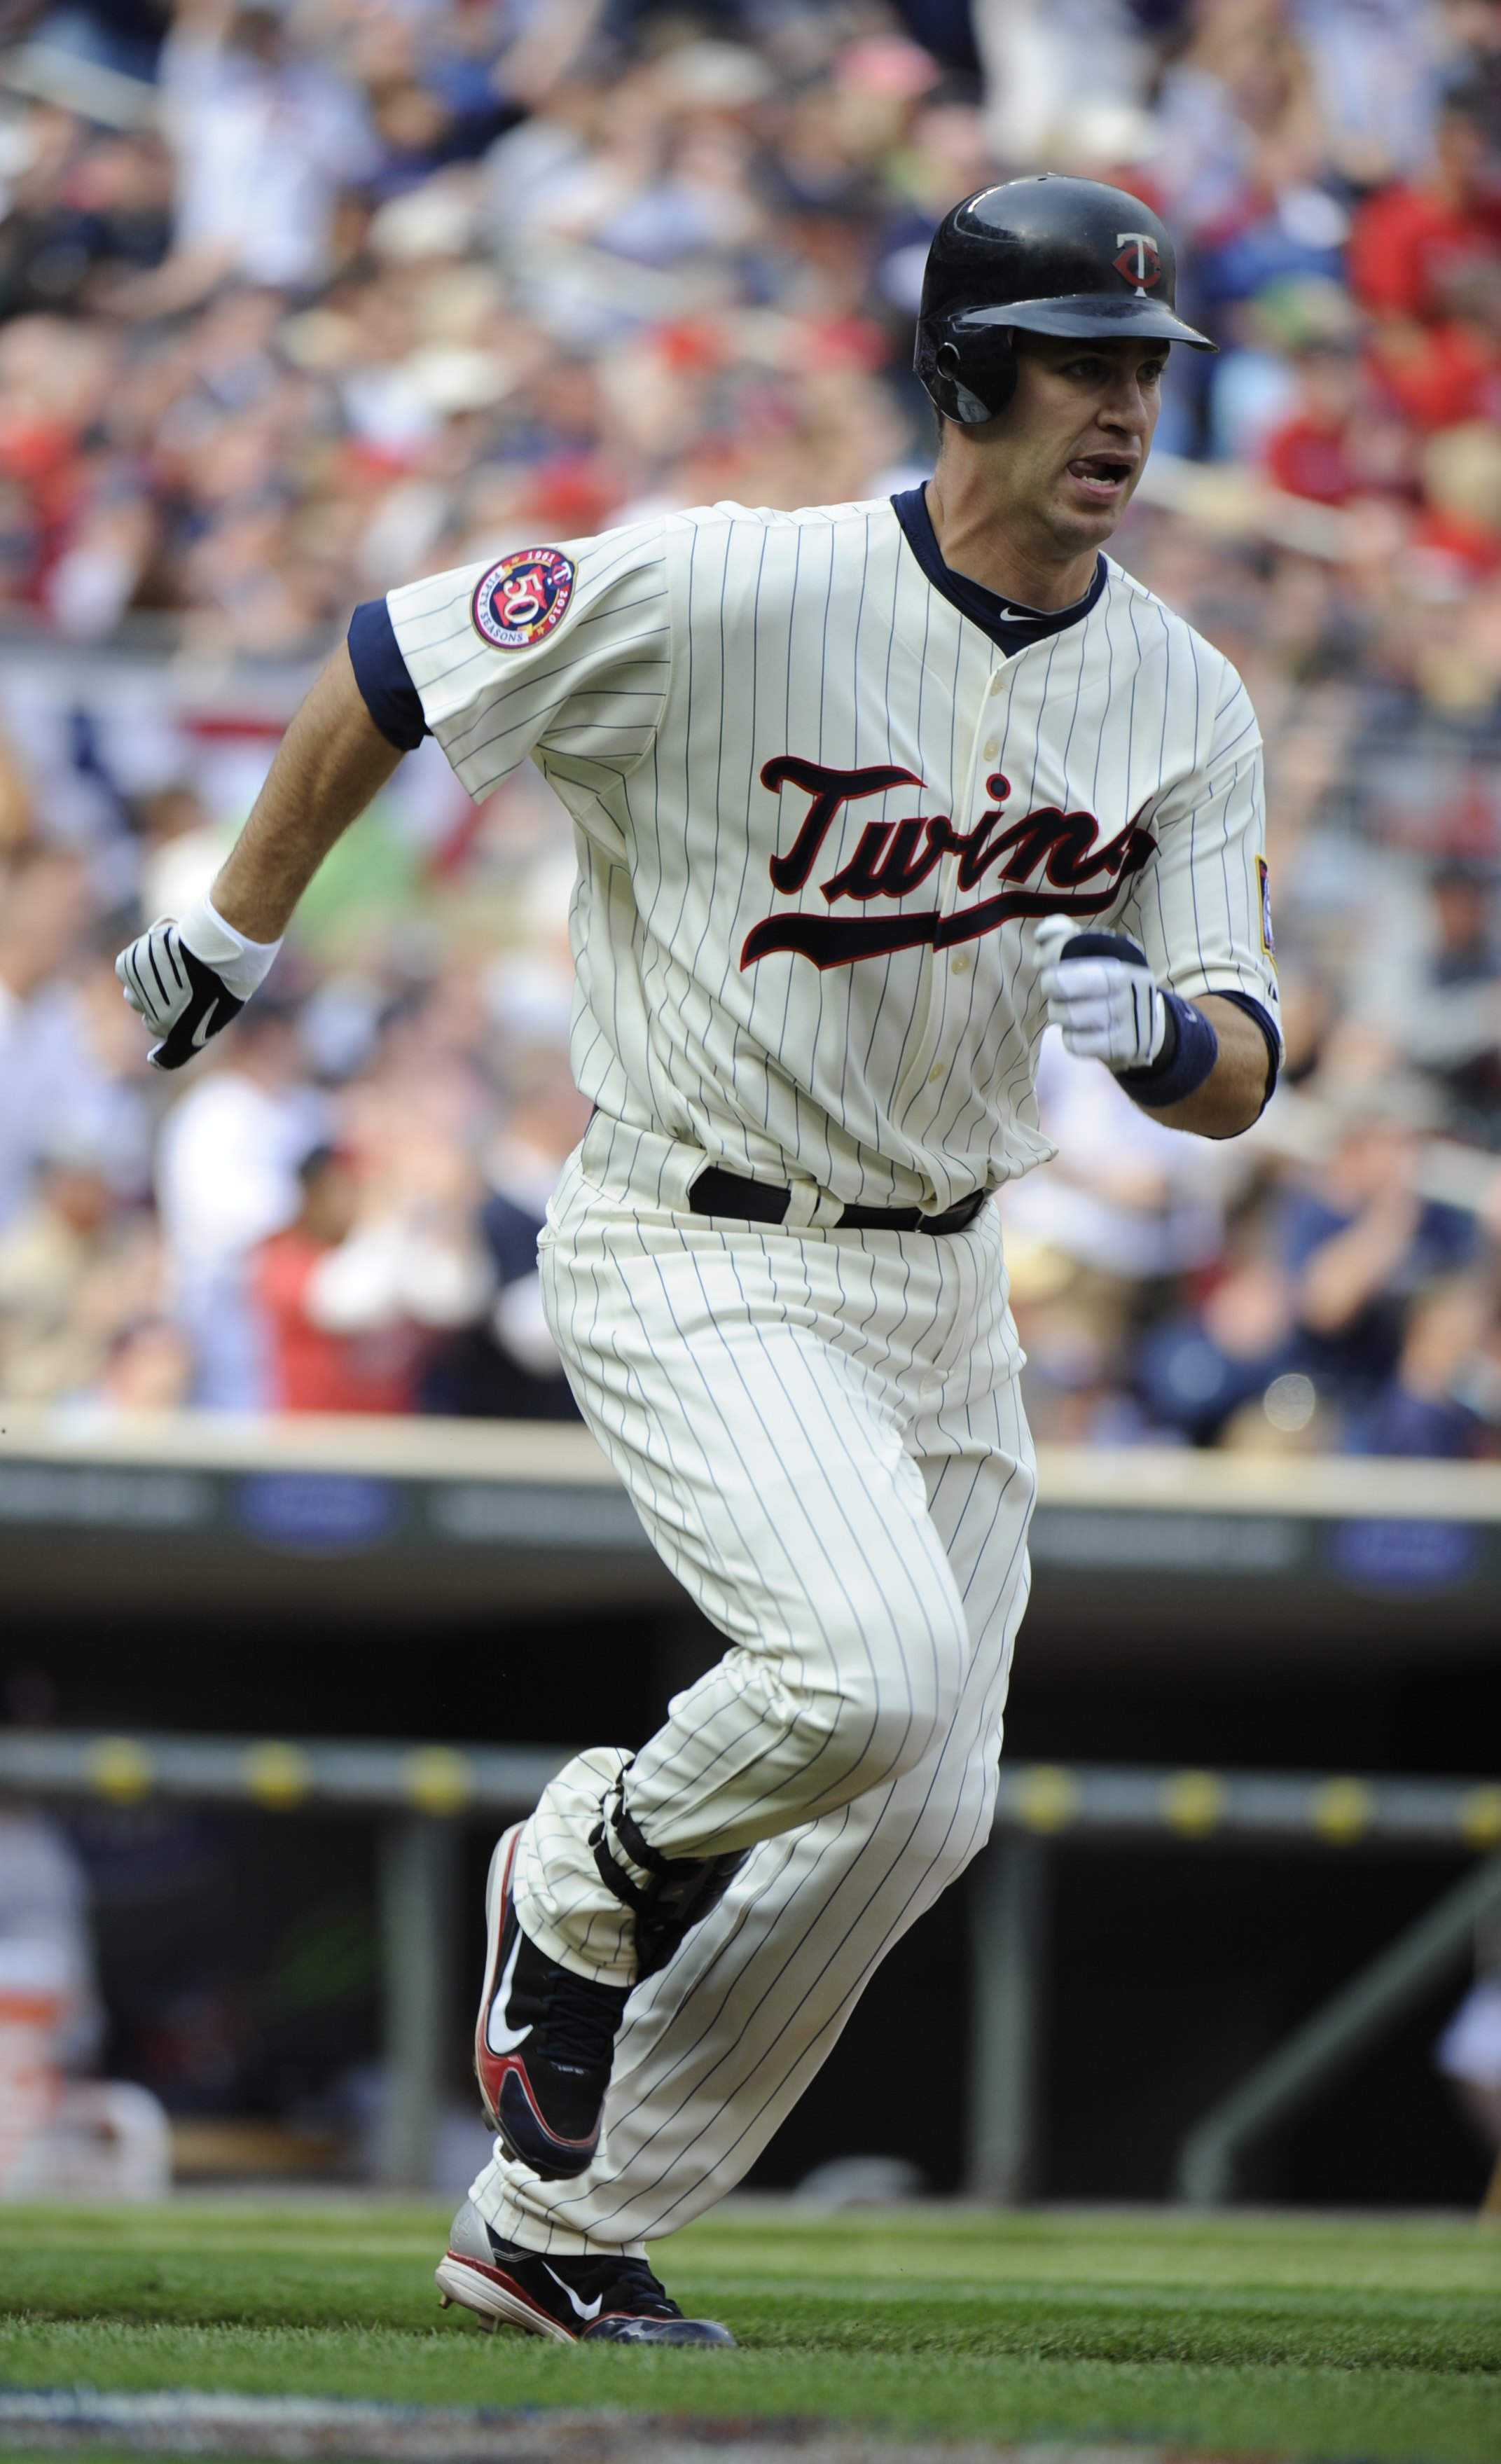 MINNEAPOLIS, MN - APRIL 12: Joe Mauer #7 of the Minnesota Twins runs towards first base after hitting an RBI double in the second inning against the Boston Red Sox during the Twins home opener at Target Field on April 12, 2010 in Minneapolis, Minnesota. (